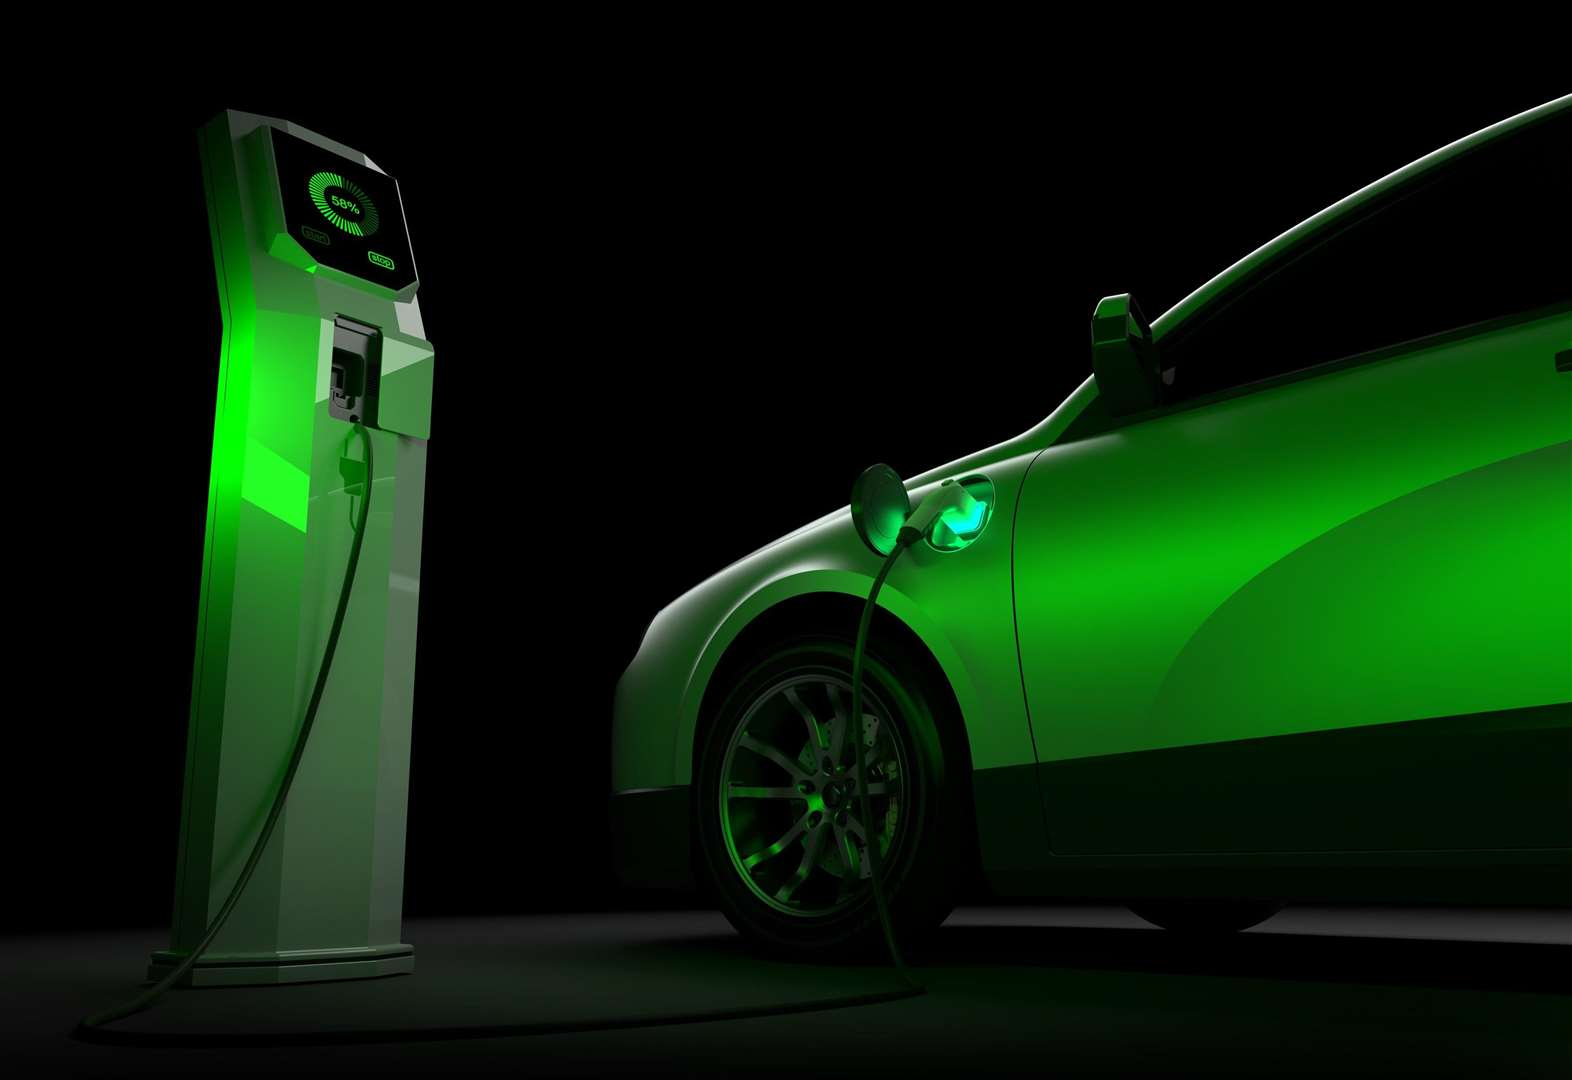 Stortford motorists need to drive the transport revolution by choosing all-electric vehicles